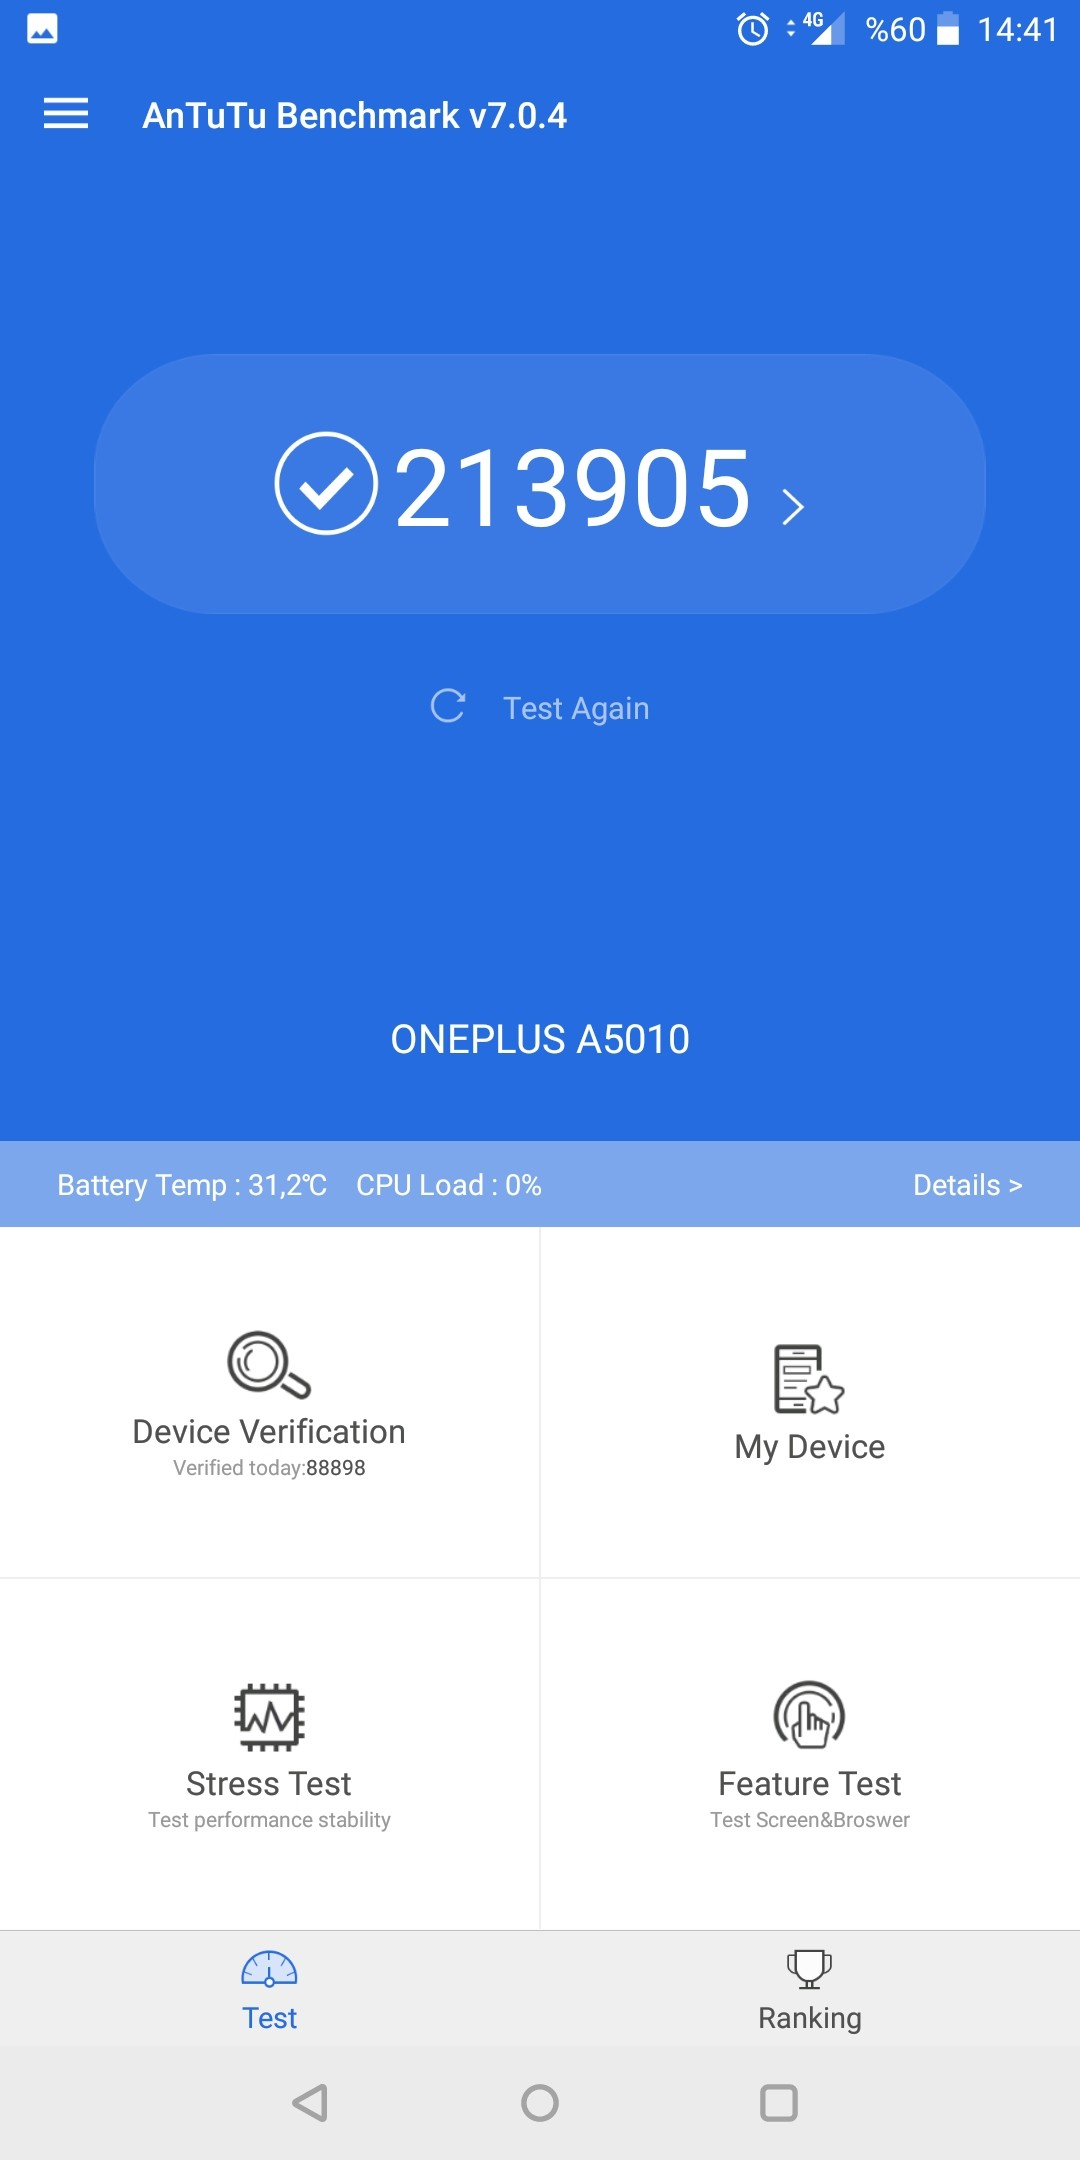 Share The New Antutu Benchmark V7 Acore here with Screenshot